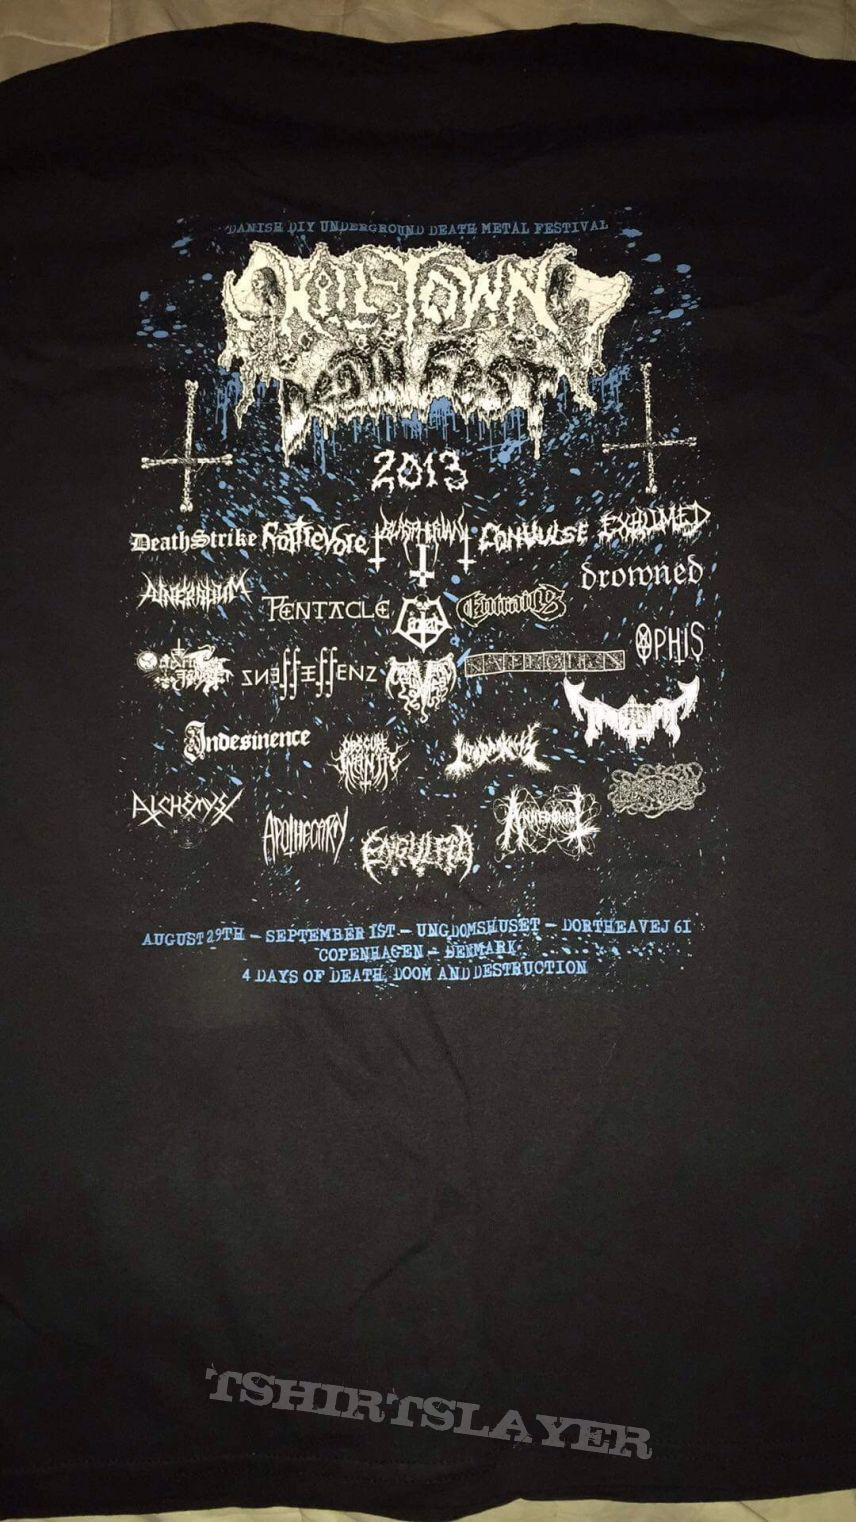 Rottrevore hung by the eyesockets 2013 Killtown Deathfest shirt